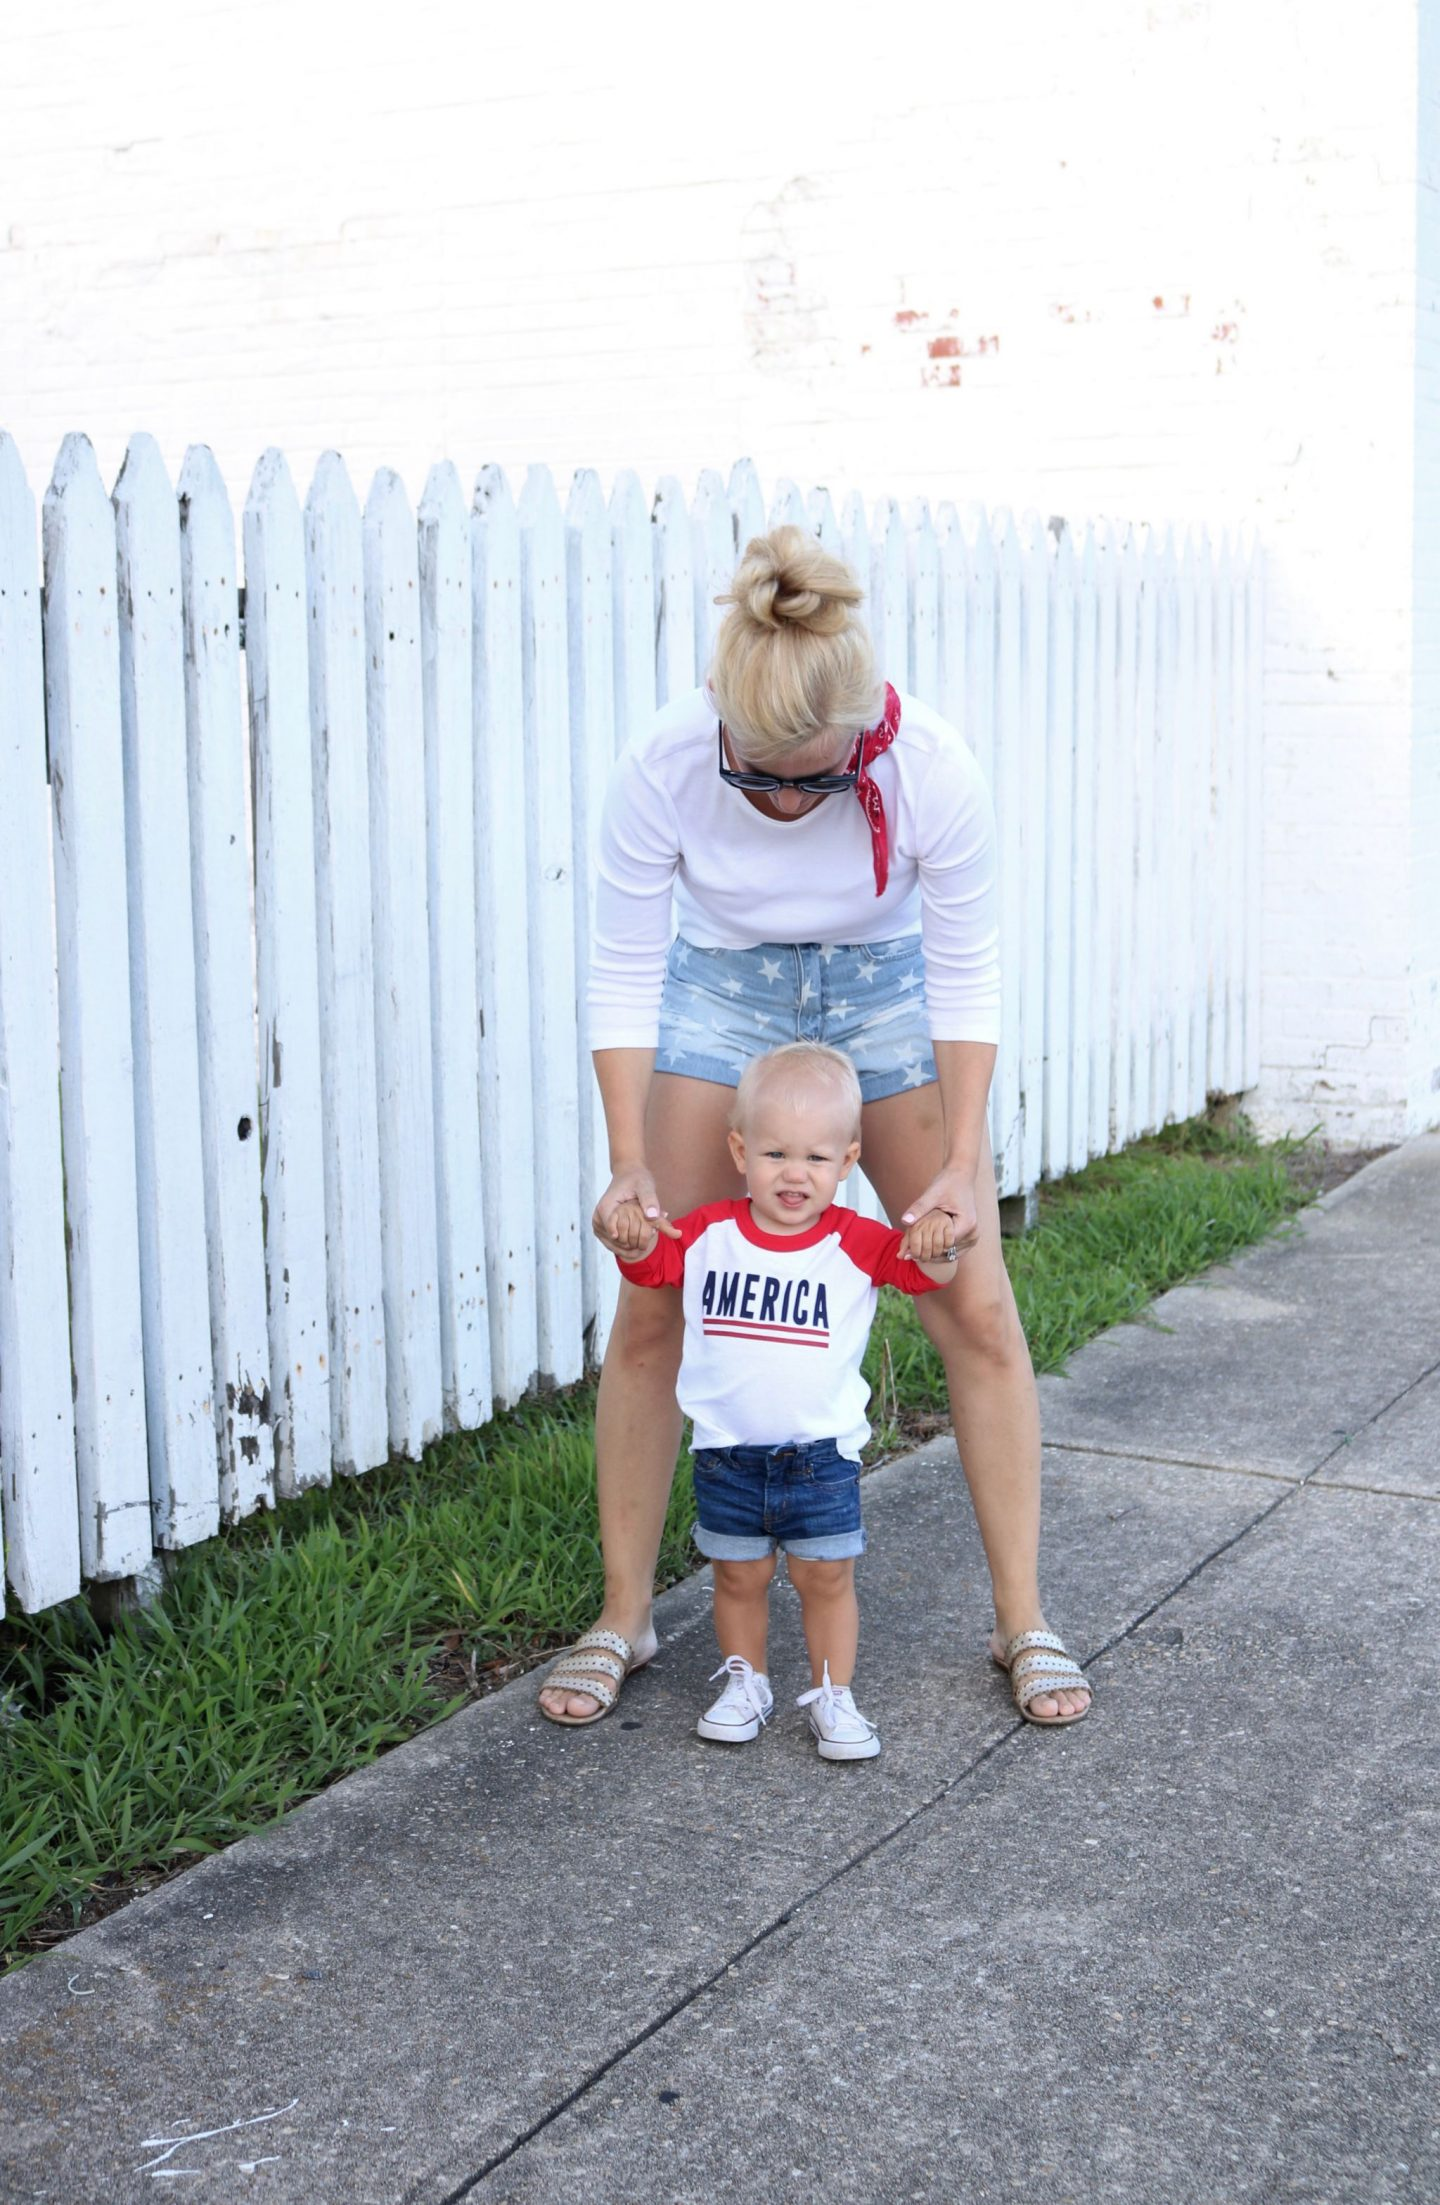 ily couture, america, ily couture toddler, bandana, mom son style, denim shorts, toddler converse